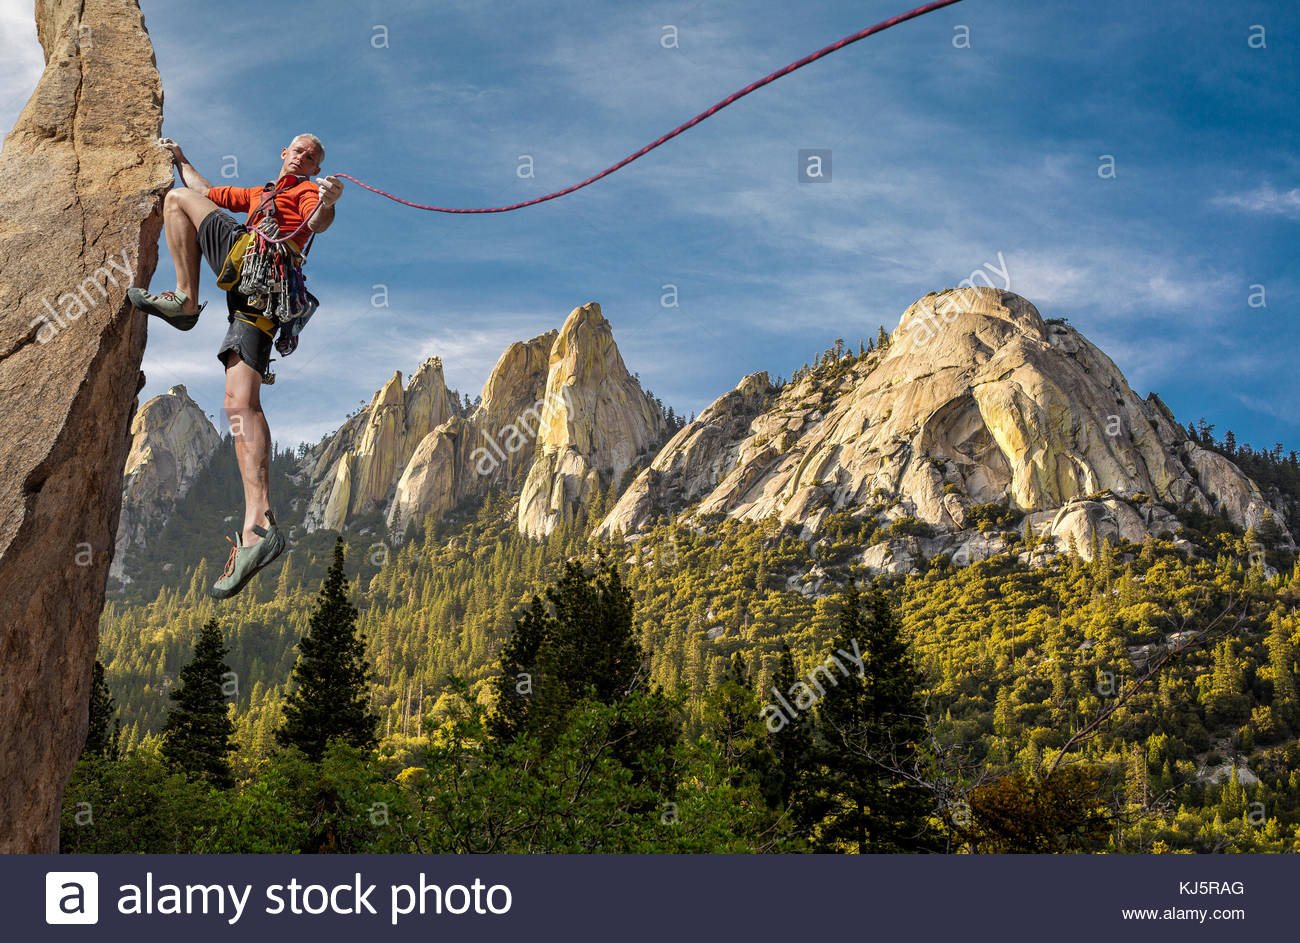 Climber holding a rope. Beautiful mountain landscape - Stock Image